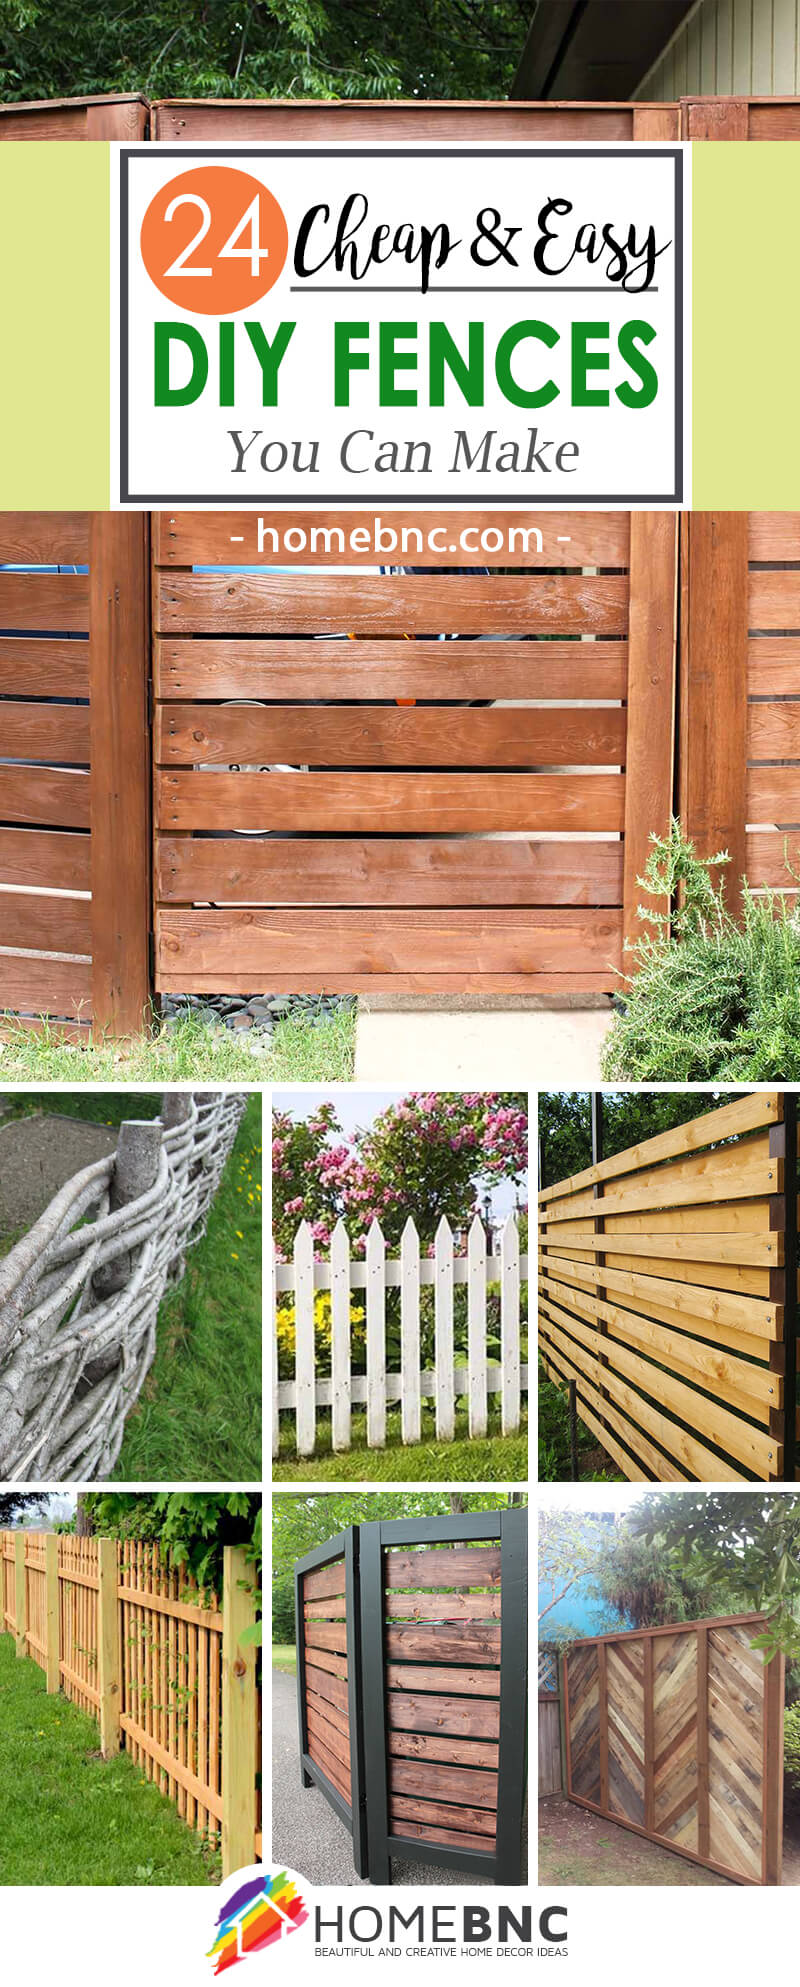 24 Best DIY Fence Decor Ideas and Designs for 2017 on Decorations For Privacy Fence id=72735